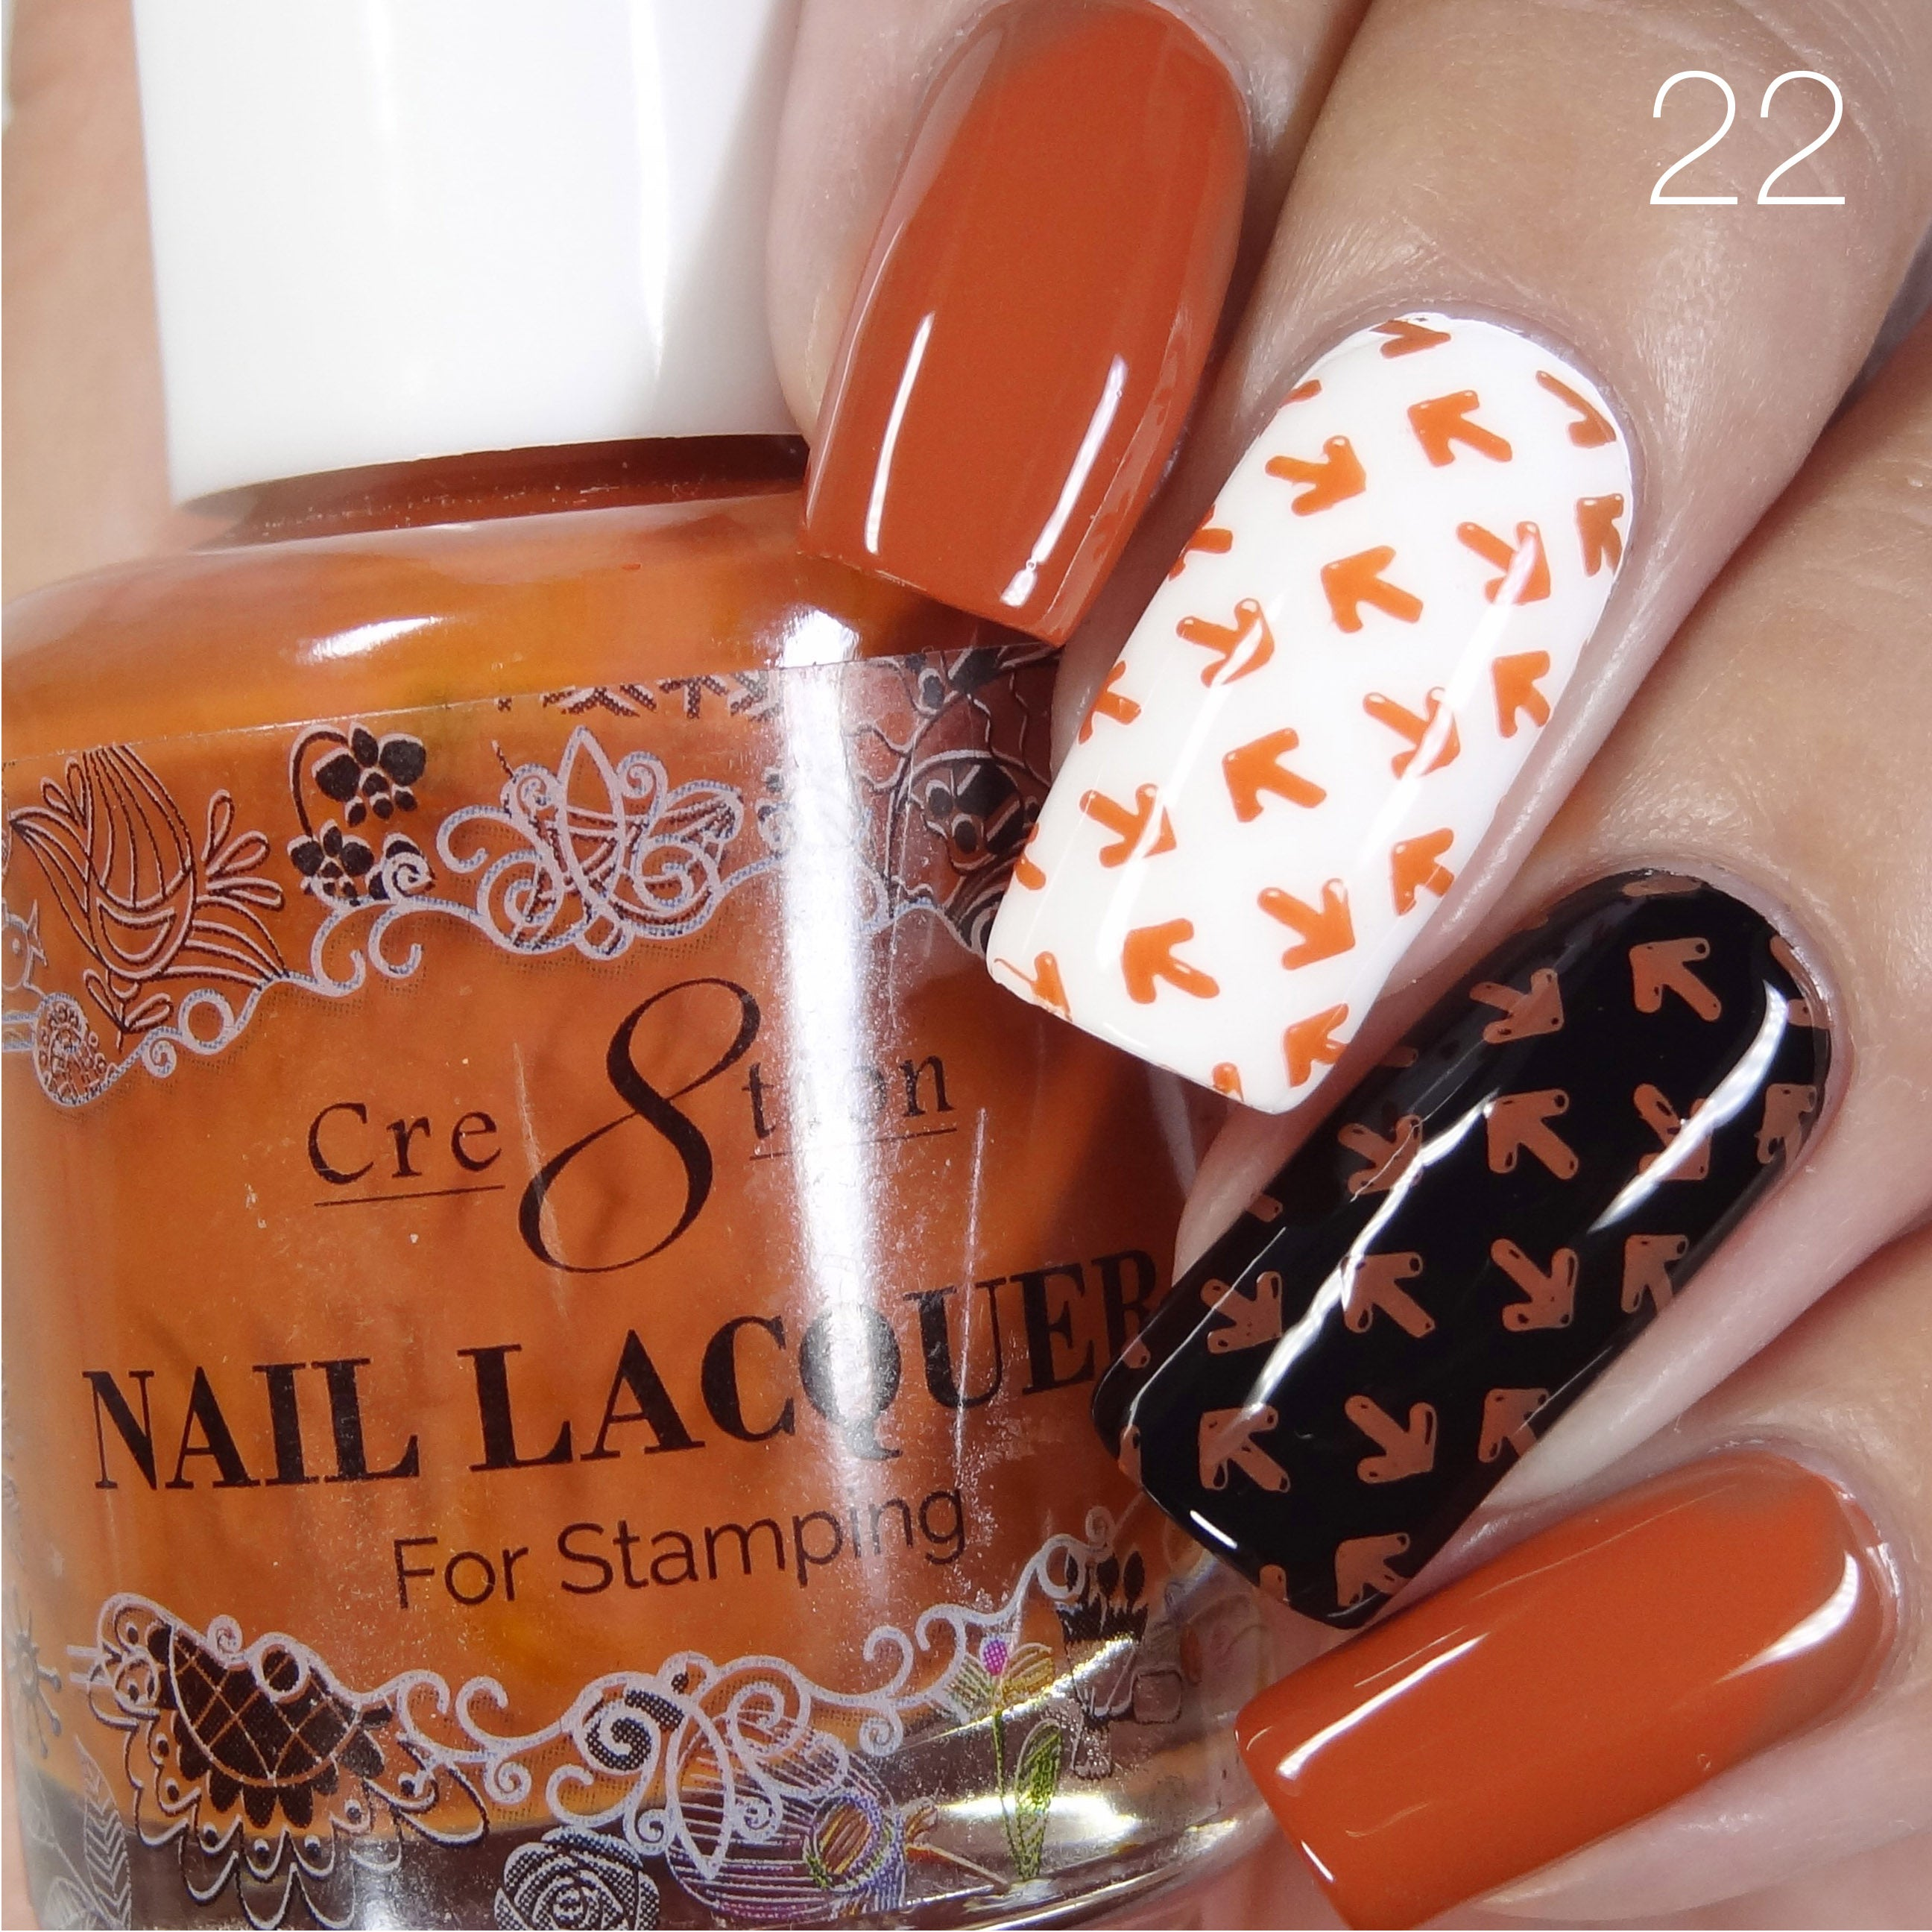 Cre8tion - Stamping Nail Art Lacquer 22